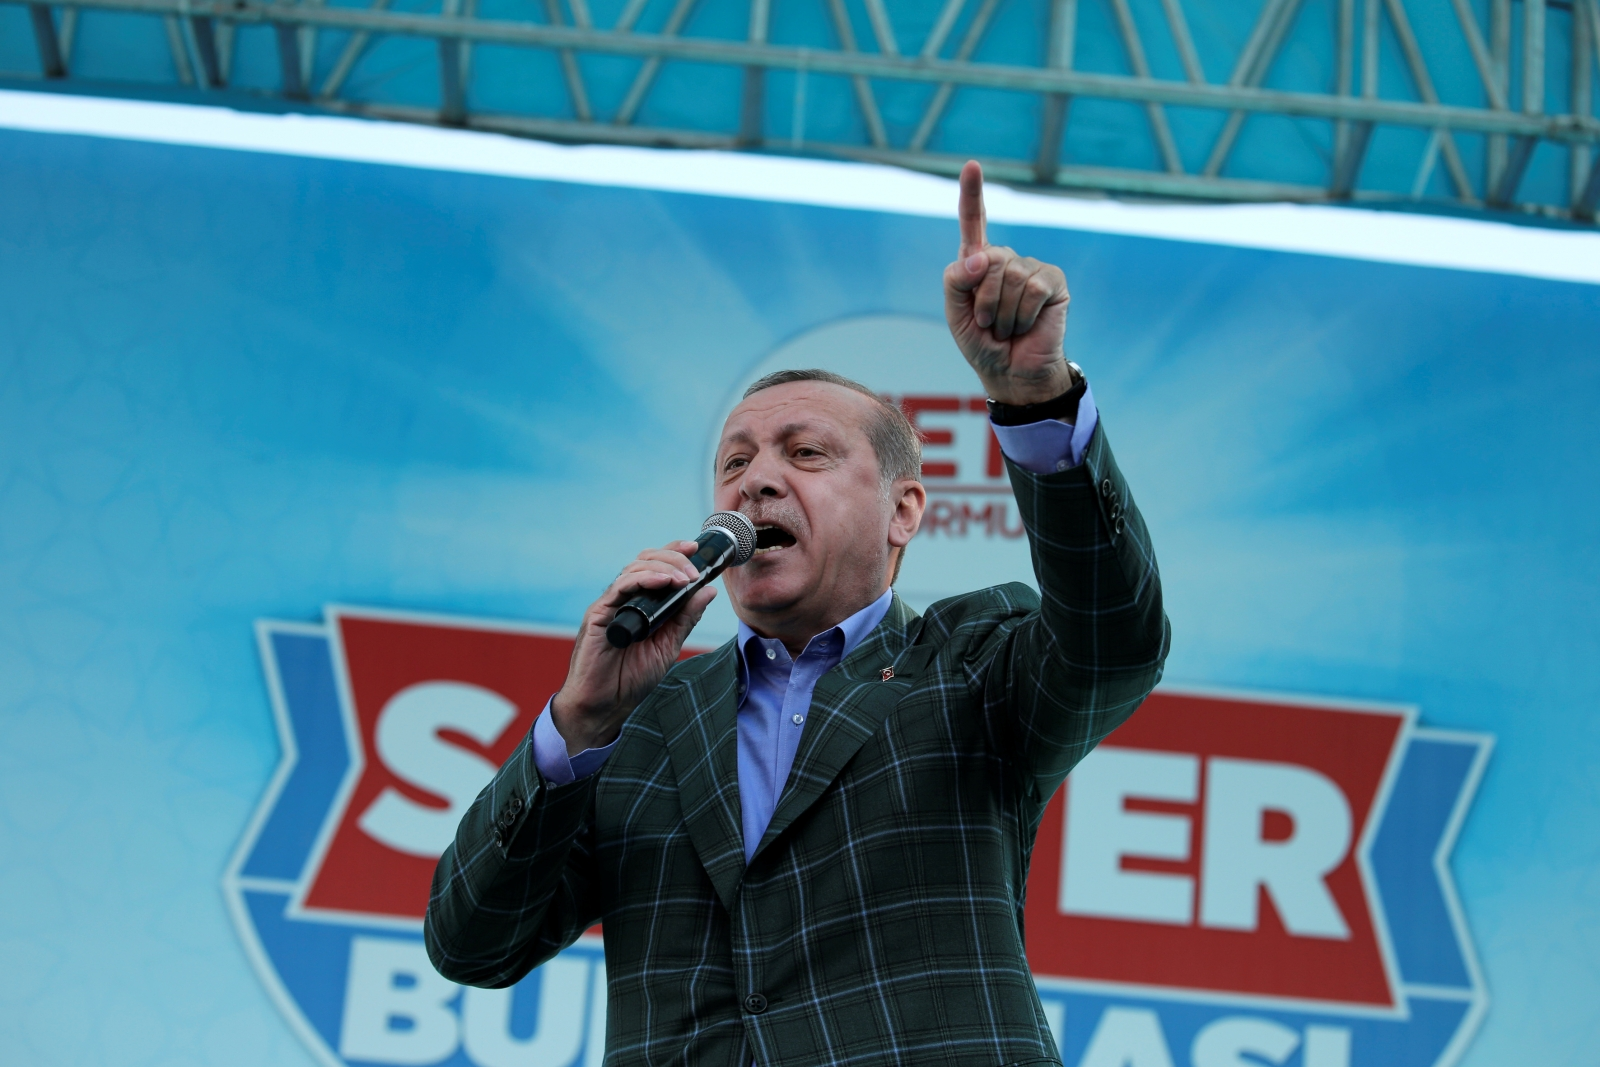 Turkish President Erdoğan warns OSCE election observers to 'know your place'